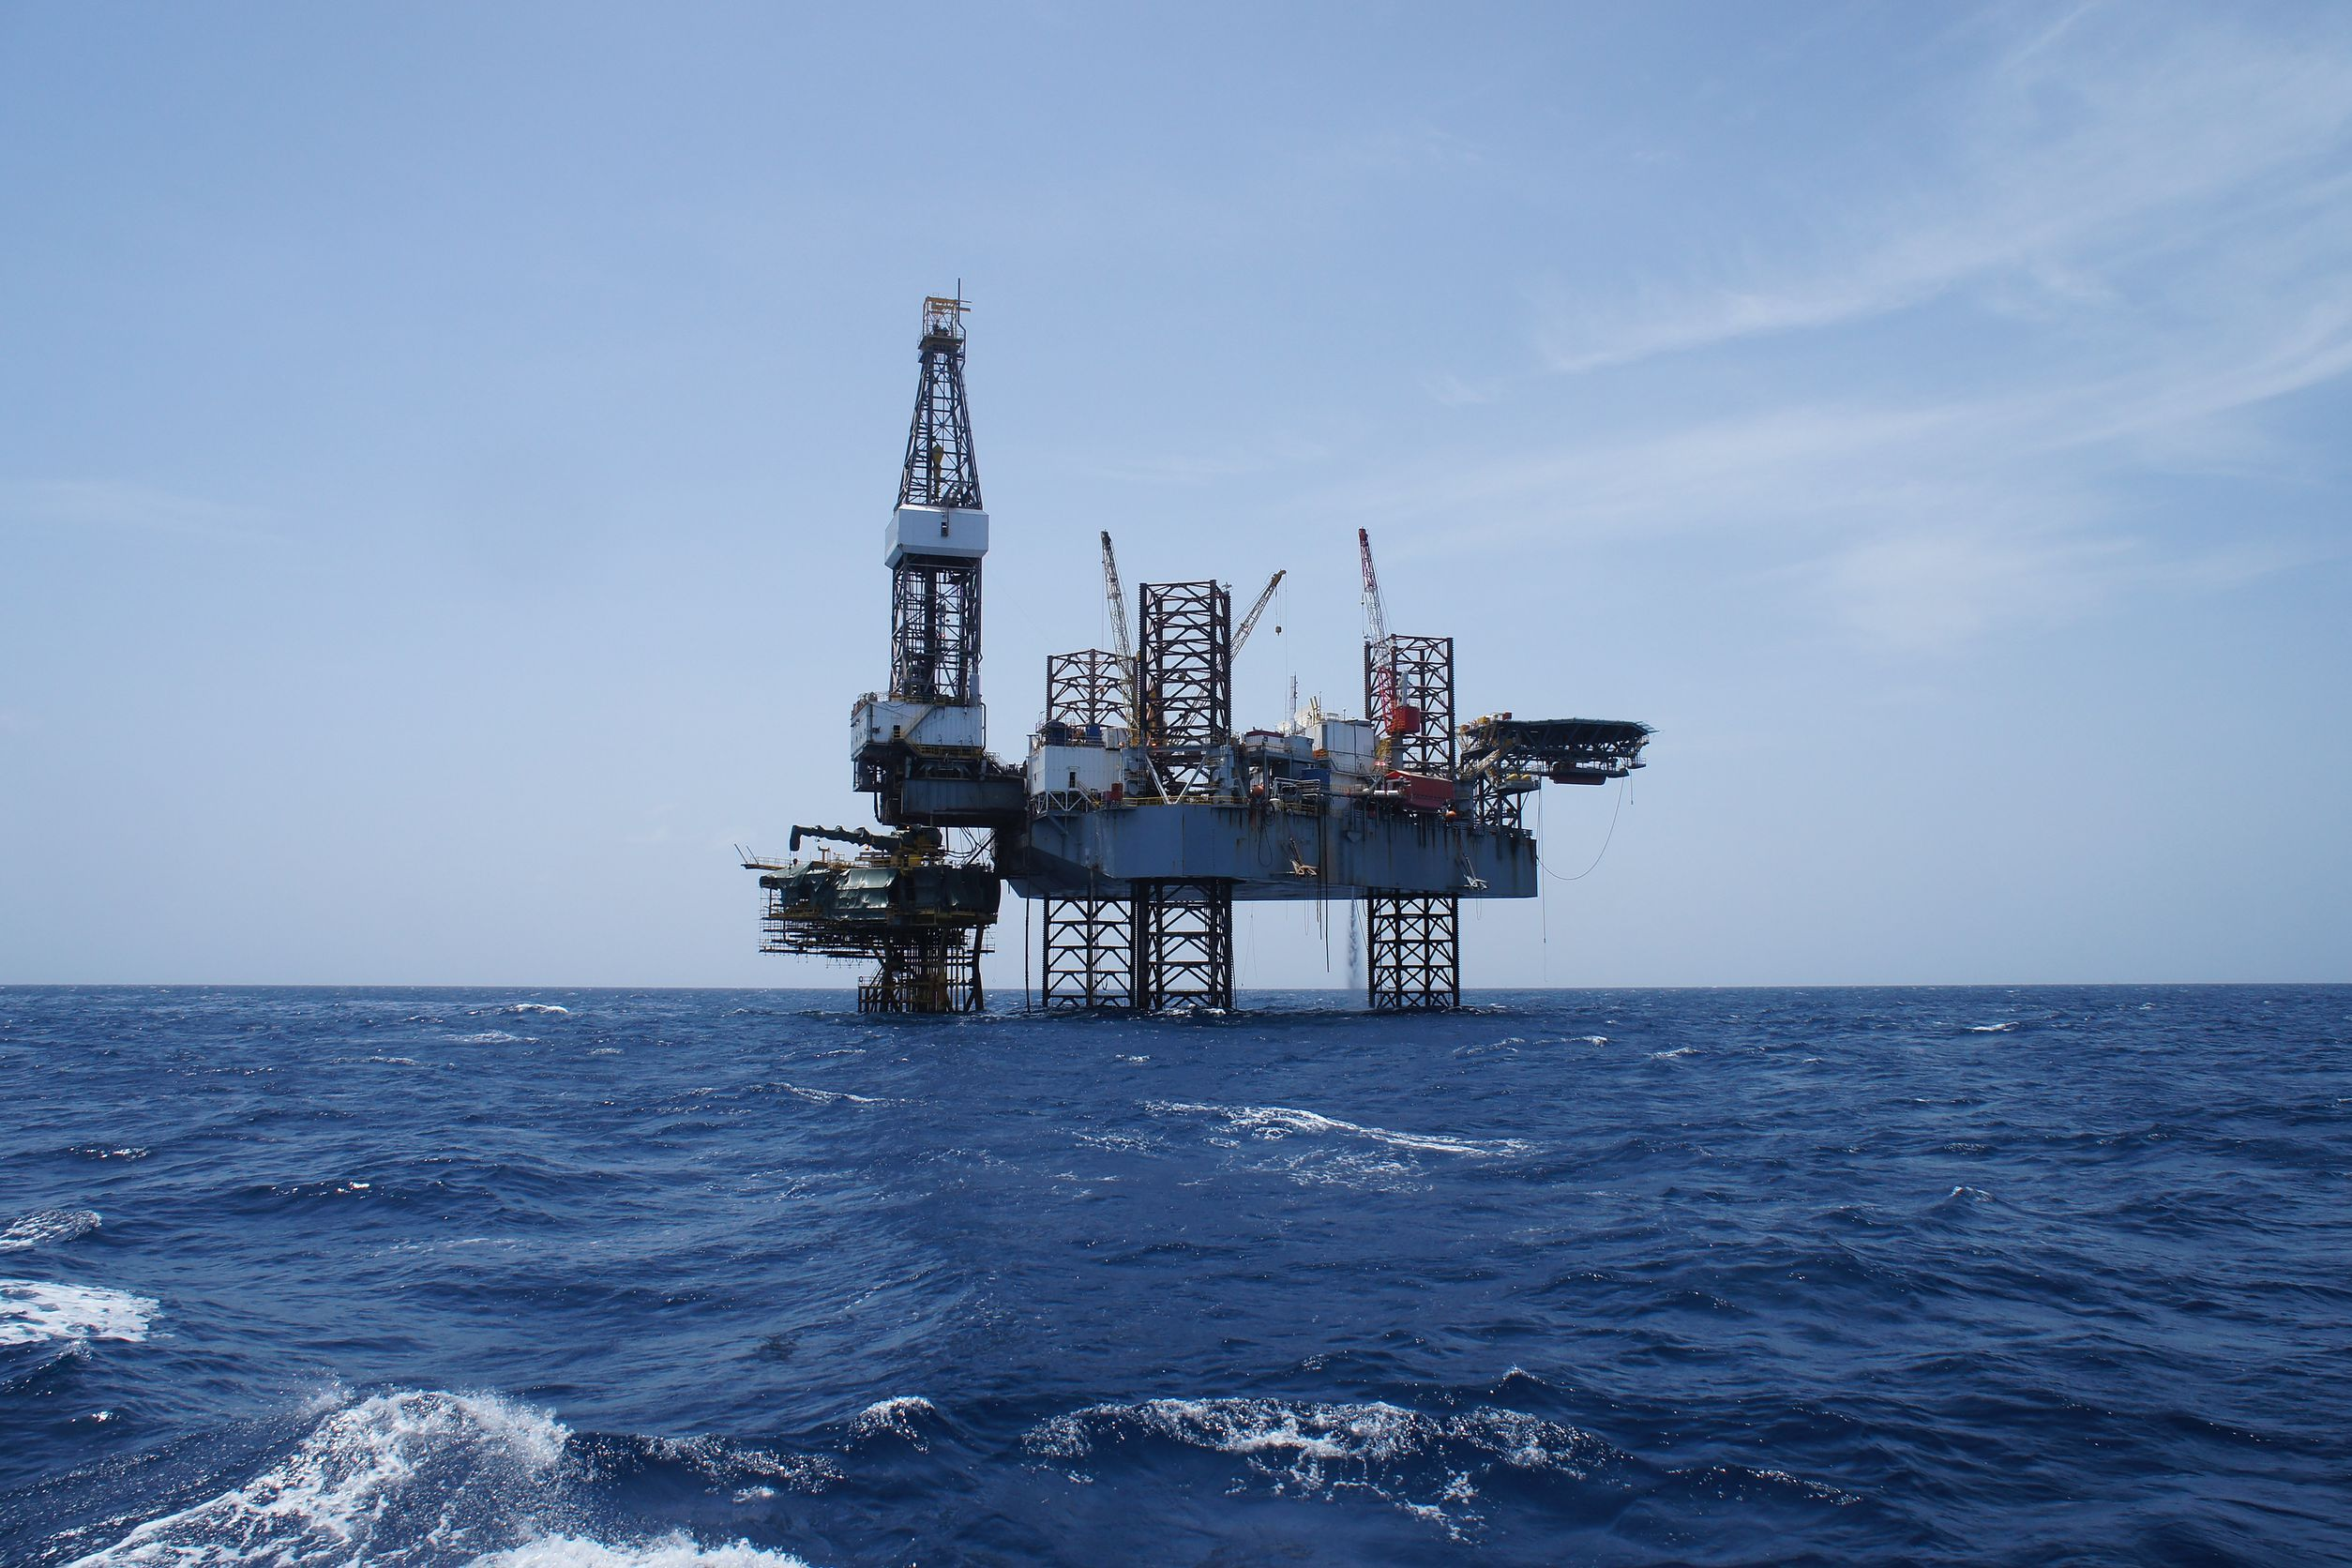 Oil drilling set up in the sea VED Technip.